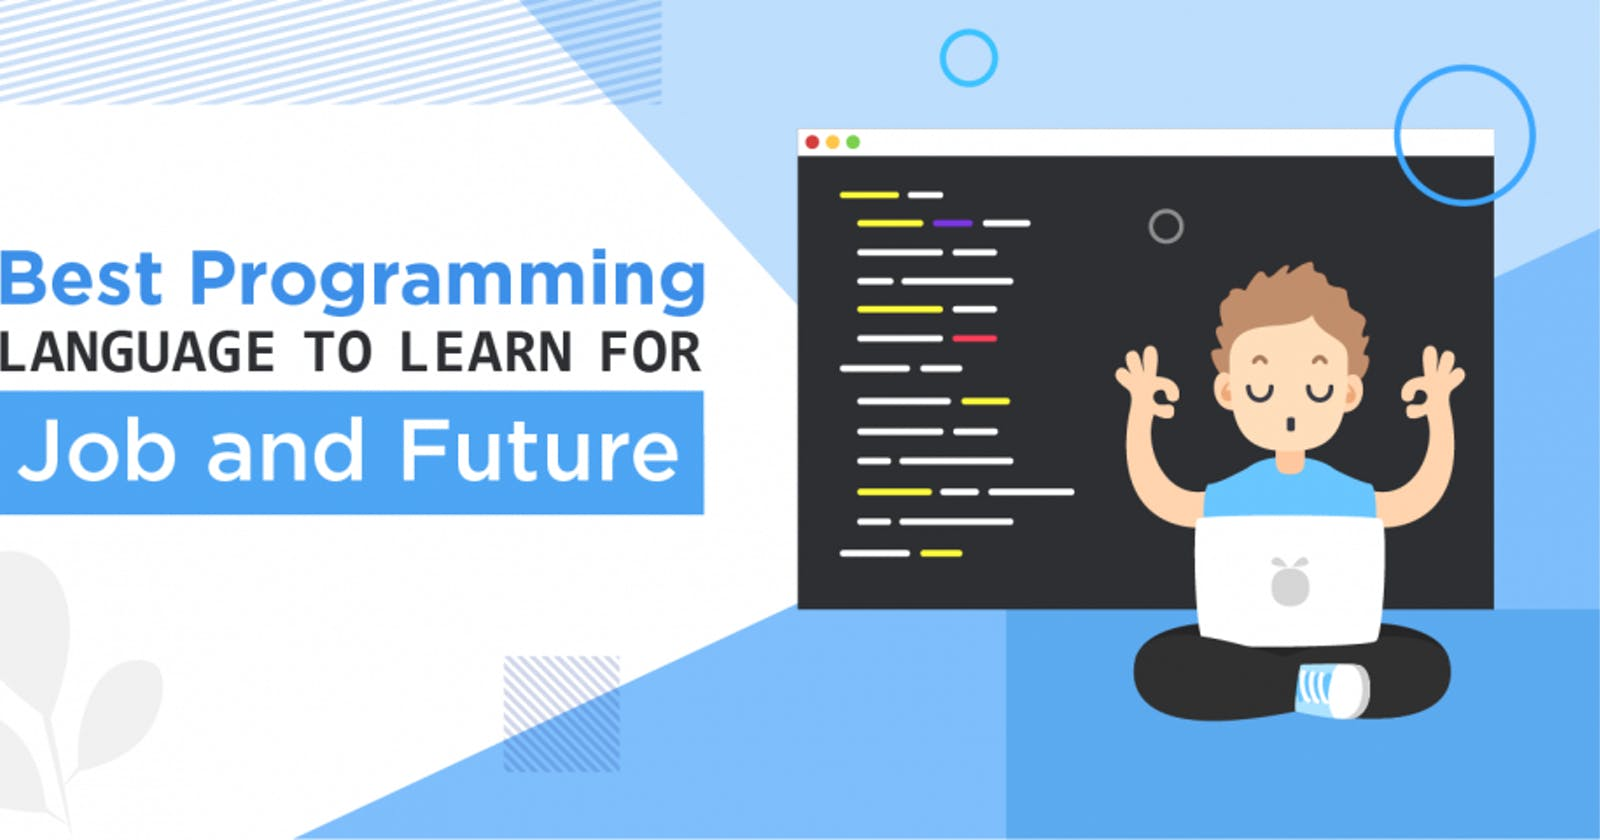 TOP 10 PROGRAMMING LANGUAGES THAT PAY HANDSOME SALARIES IN 2021